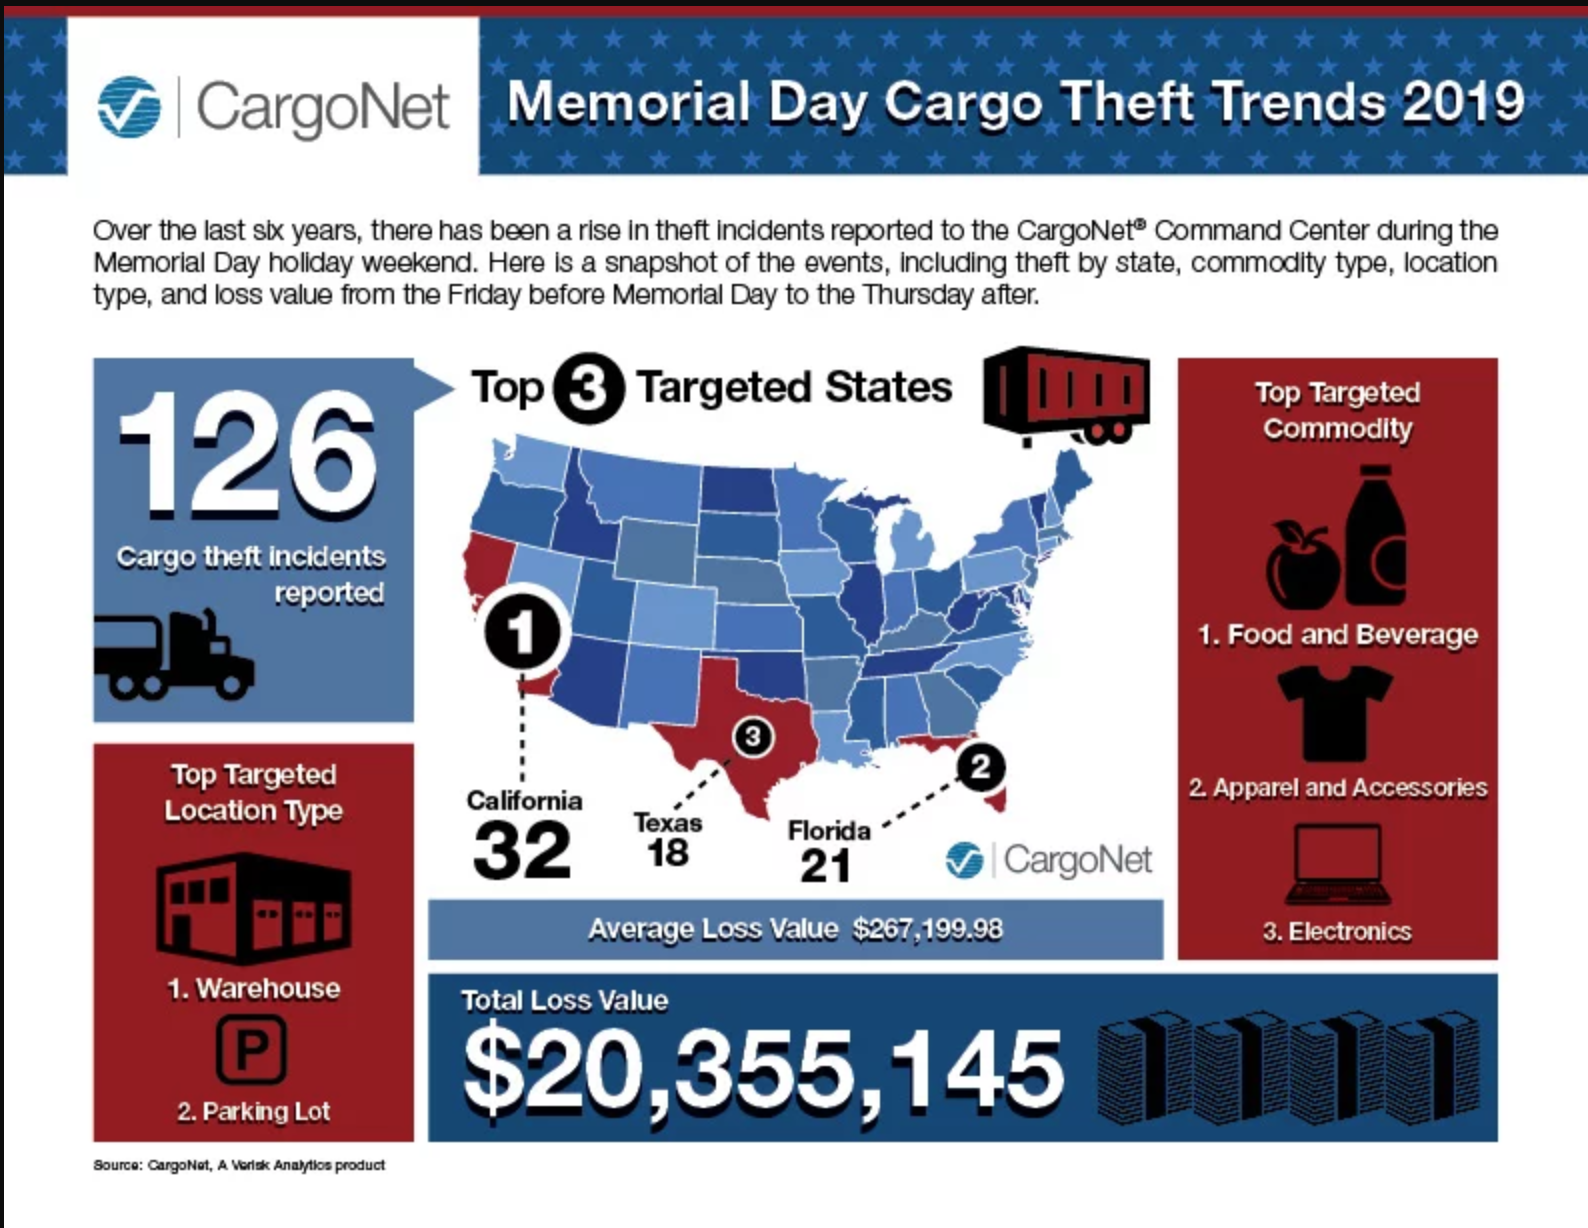 Increased Cargo Theft Warning For Memorial Day Weekend